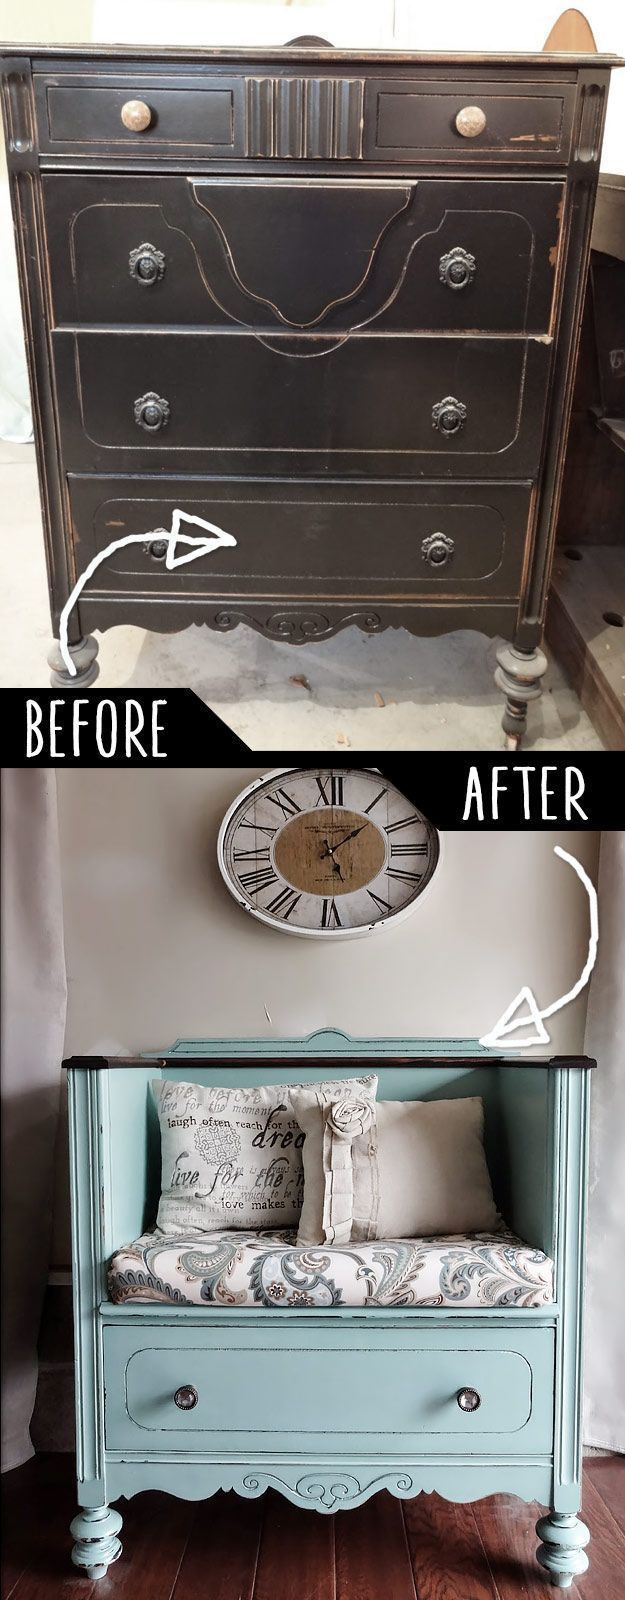 39 Clever DIY Furniture Hacks. 25  best ideas about Cheap home furniture on Pinterest   Pallet